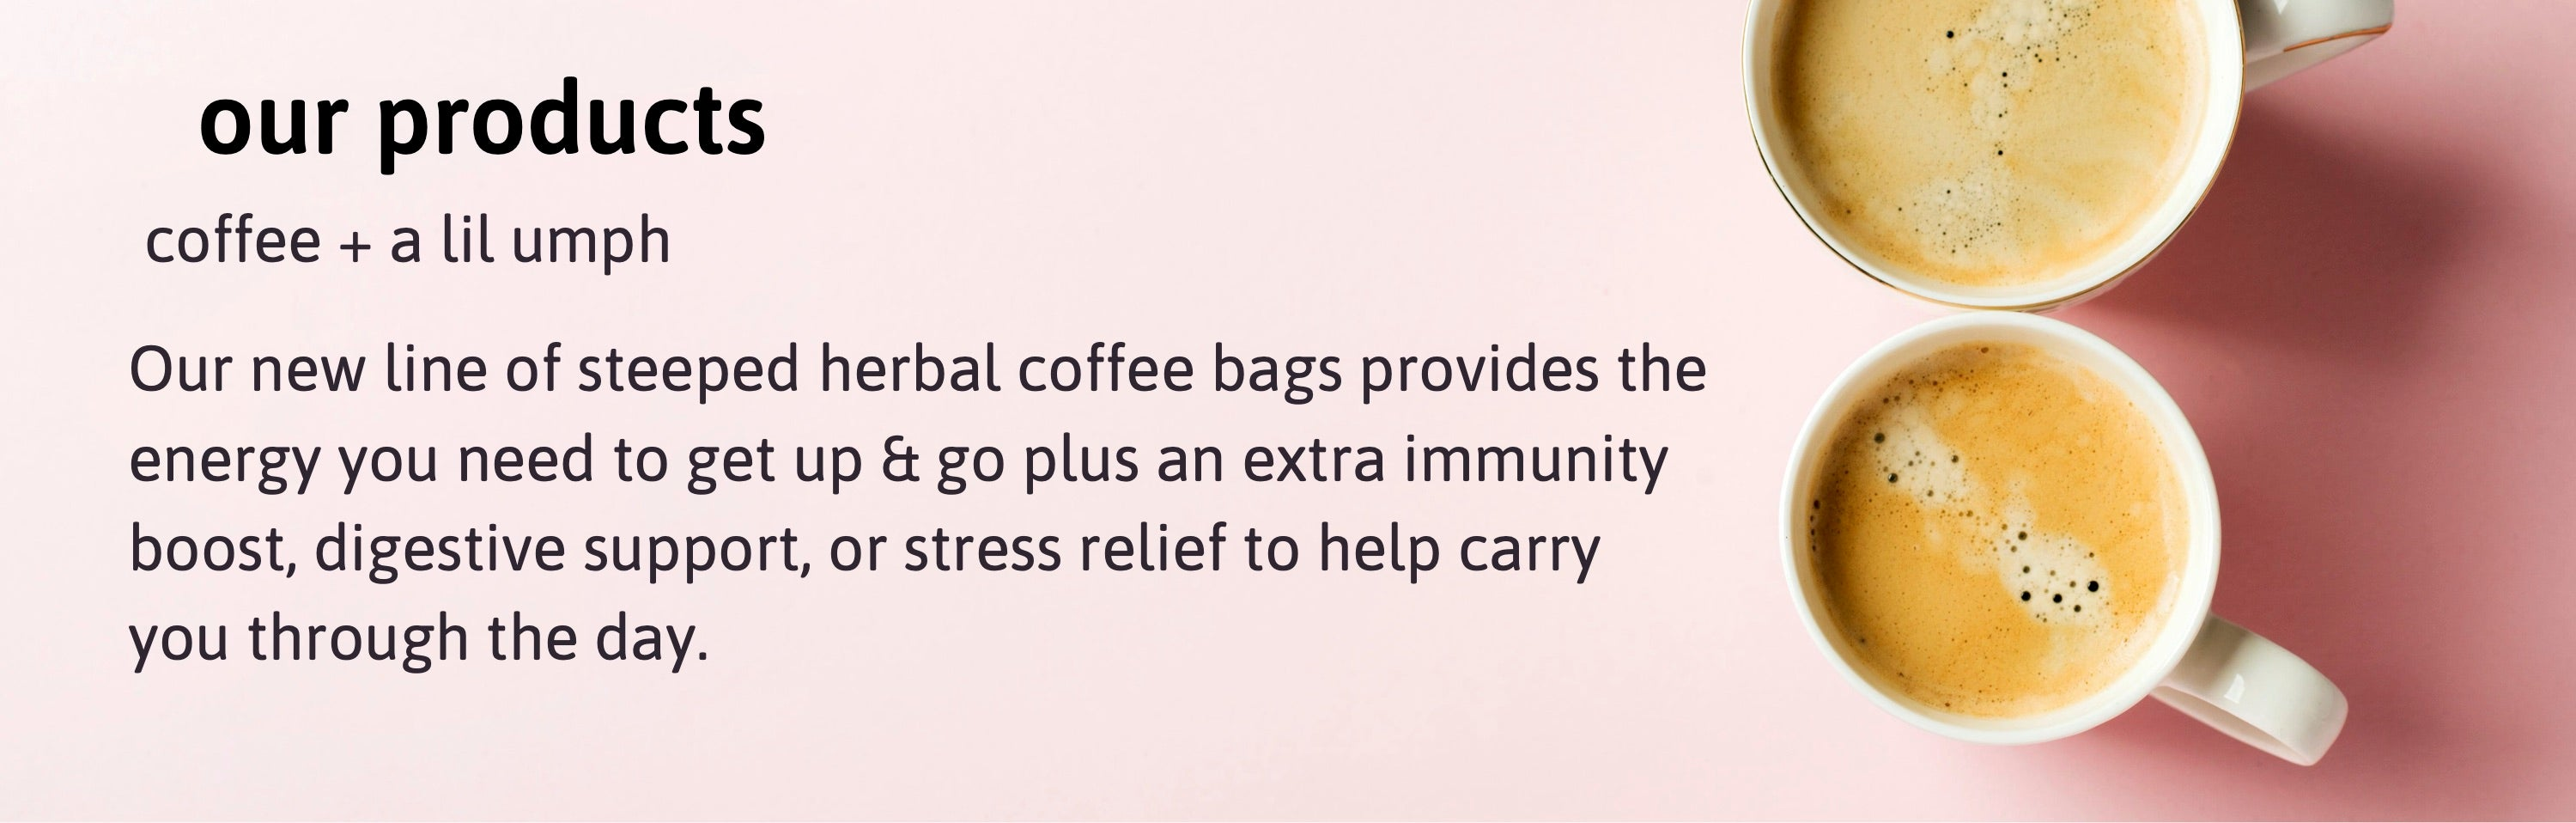 Our products: coffee + a lil umph. Our new line of steeped herbal coffee bags provides the energy you need to get up and go, plus an extra immunity boost, digestive support, or stress relief to help carry you through the day.